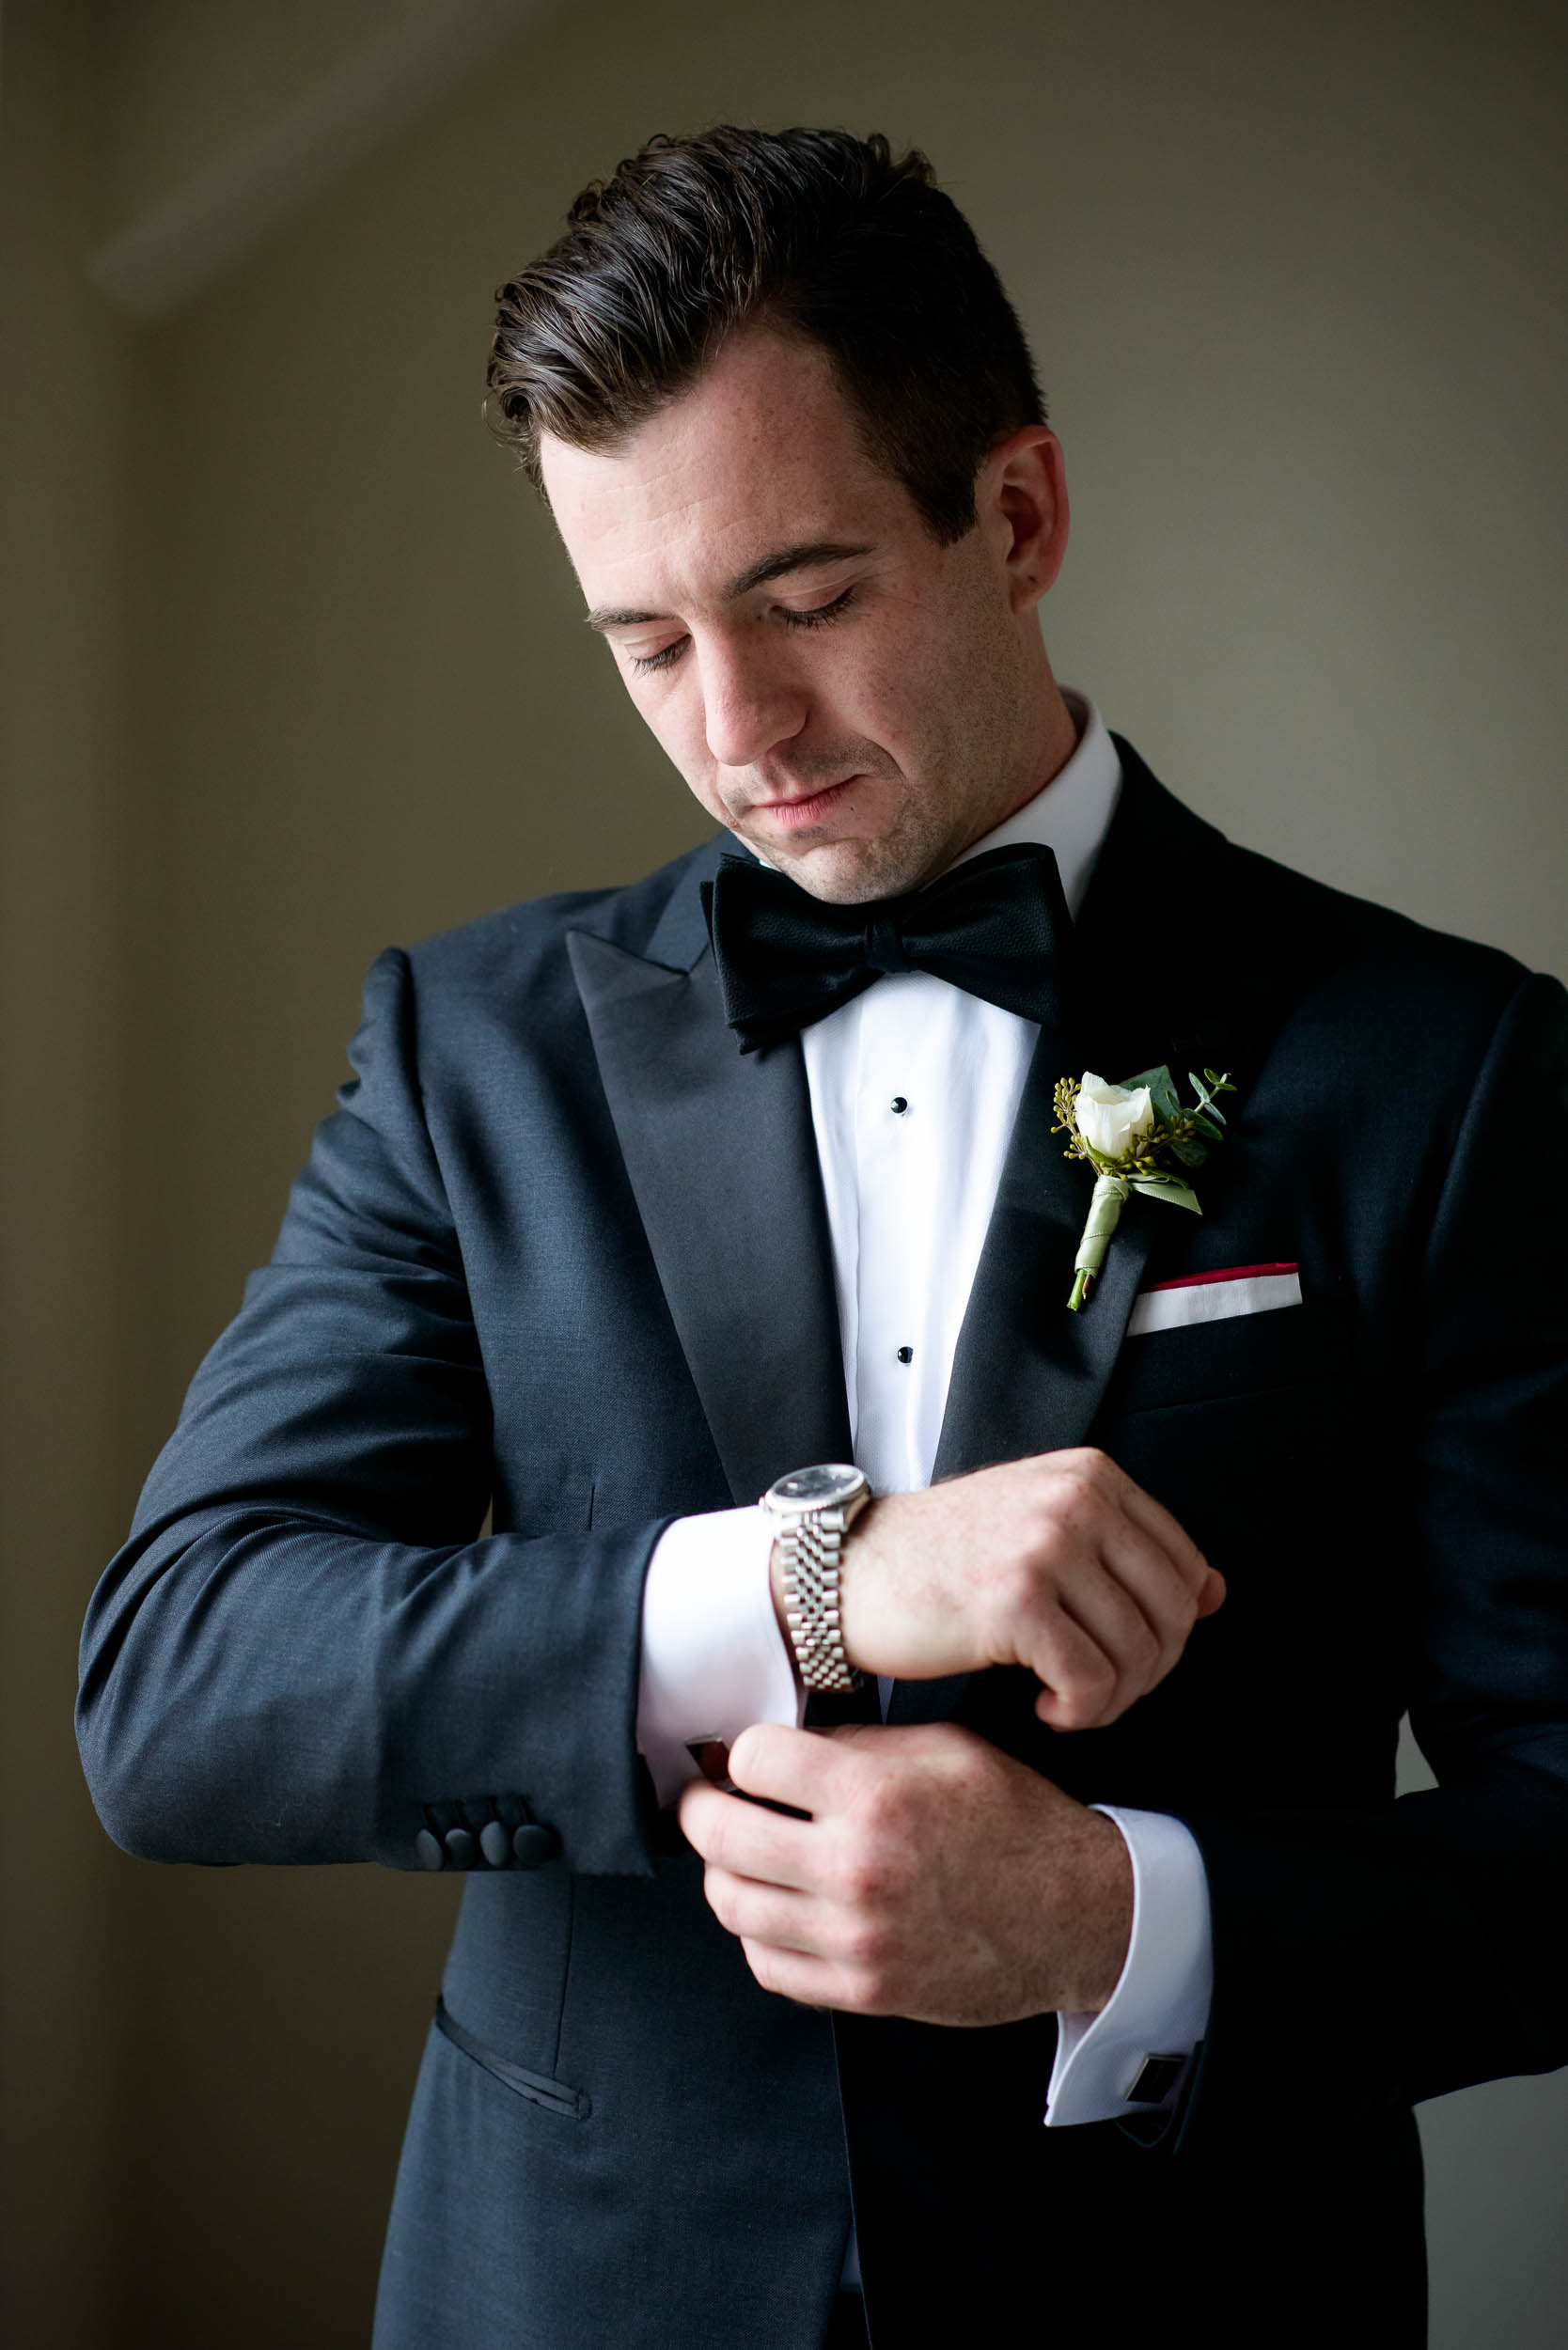 Groom getting ready during a Glessner House Chicago wedding.